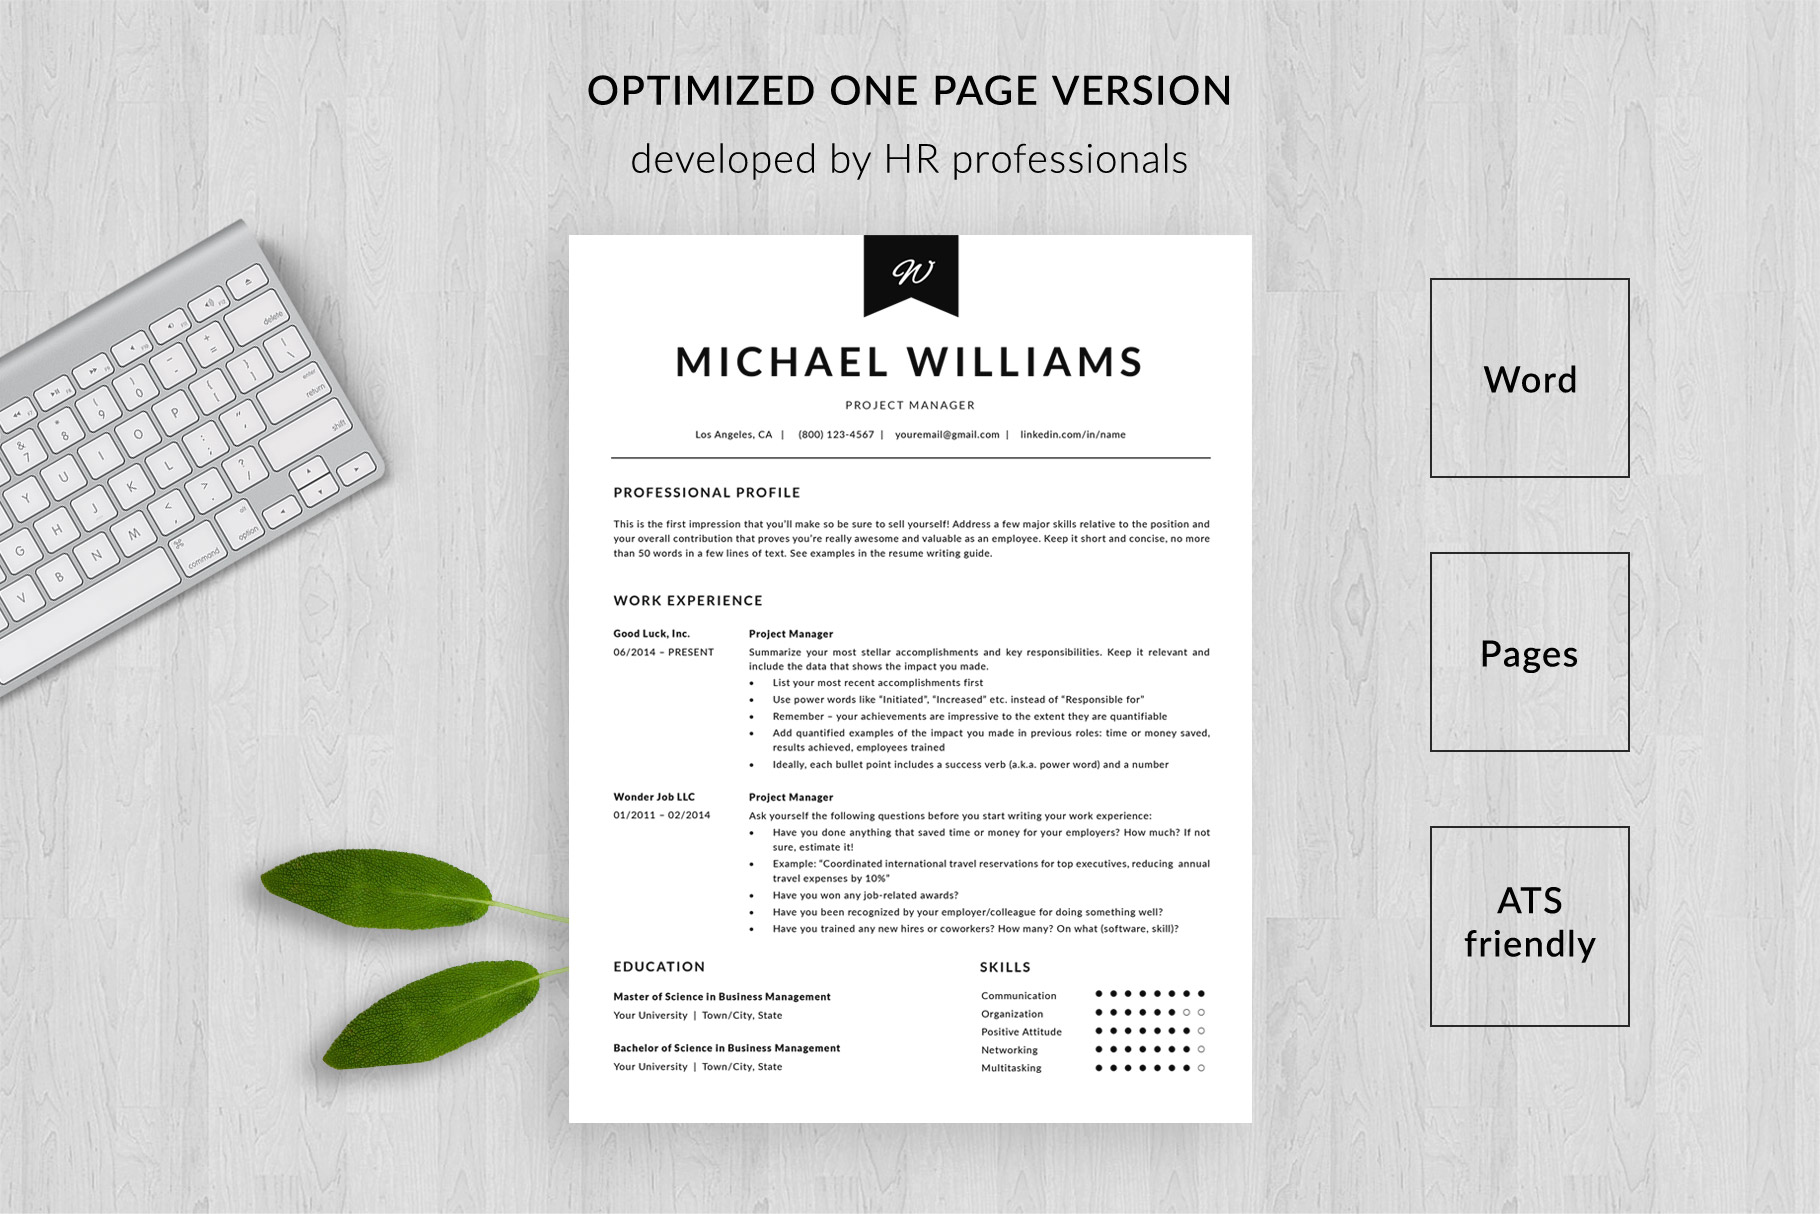 modern resume template and cover letter michael bonus free templates ats friendly one Resume Free Resume Templates Ats Friendly